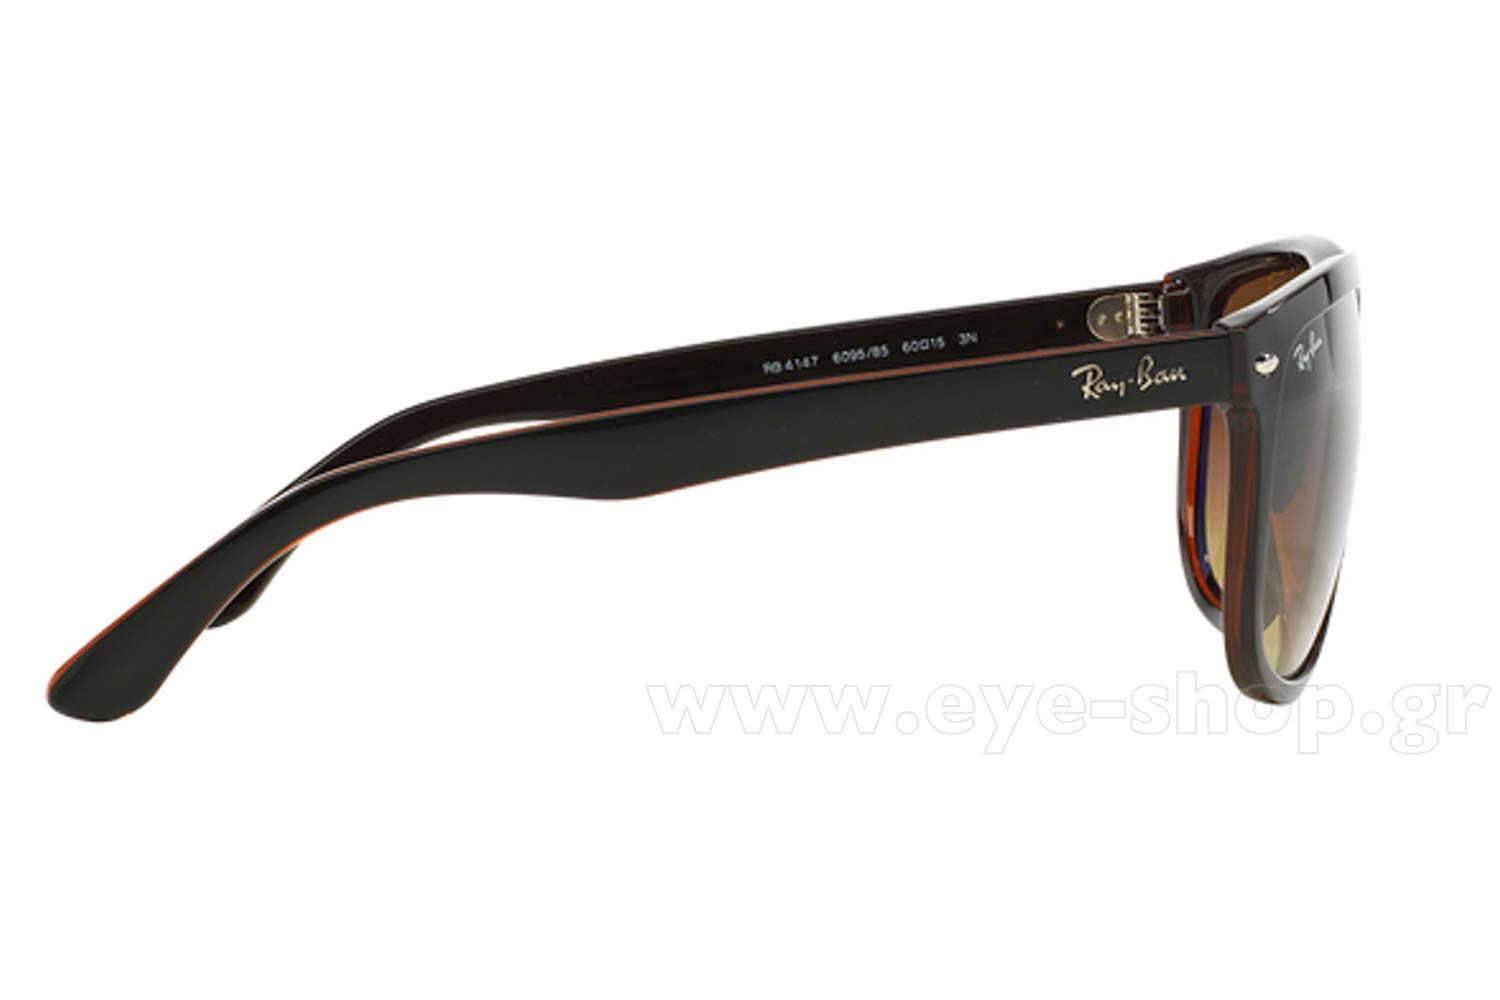 Rayban model 4147 color 609585 bbfc413d57